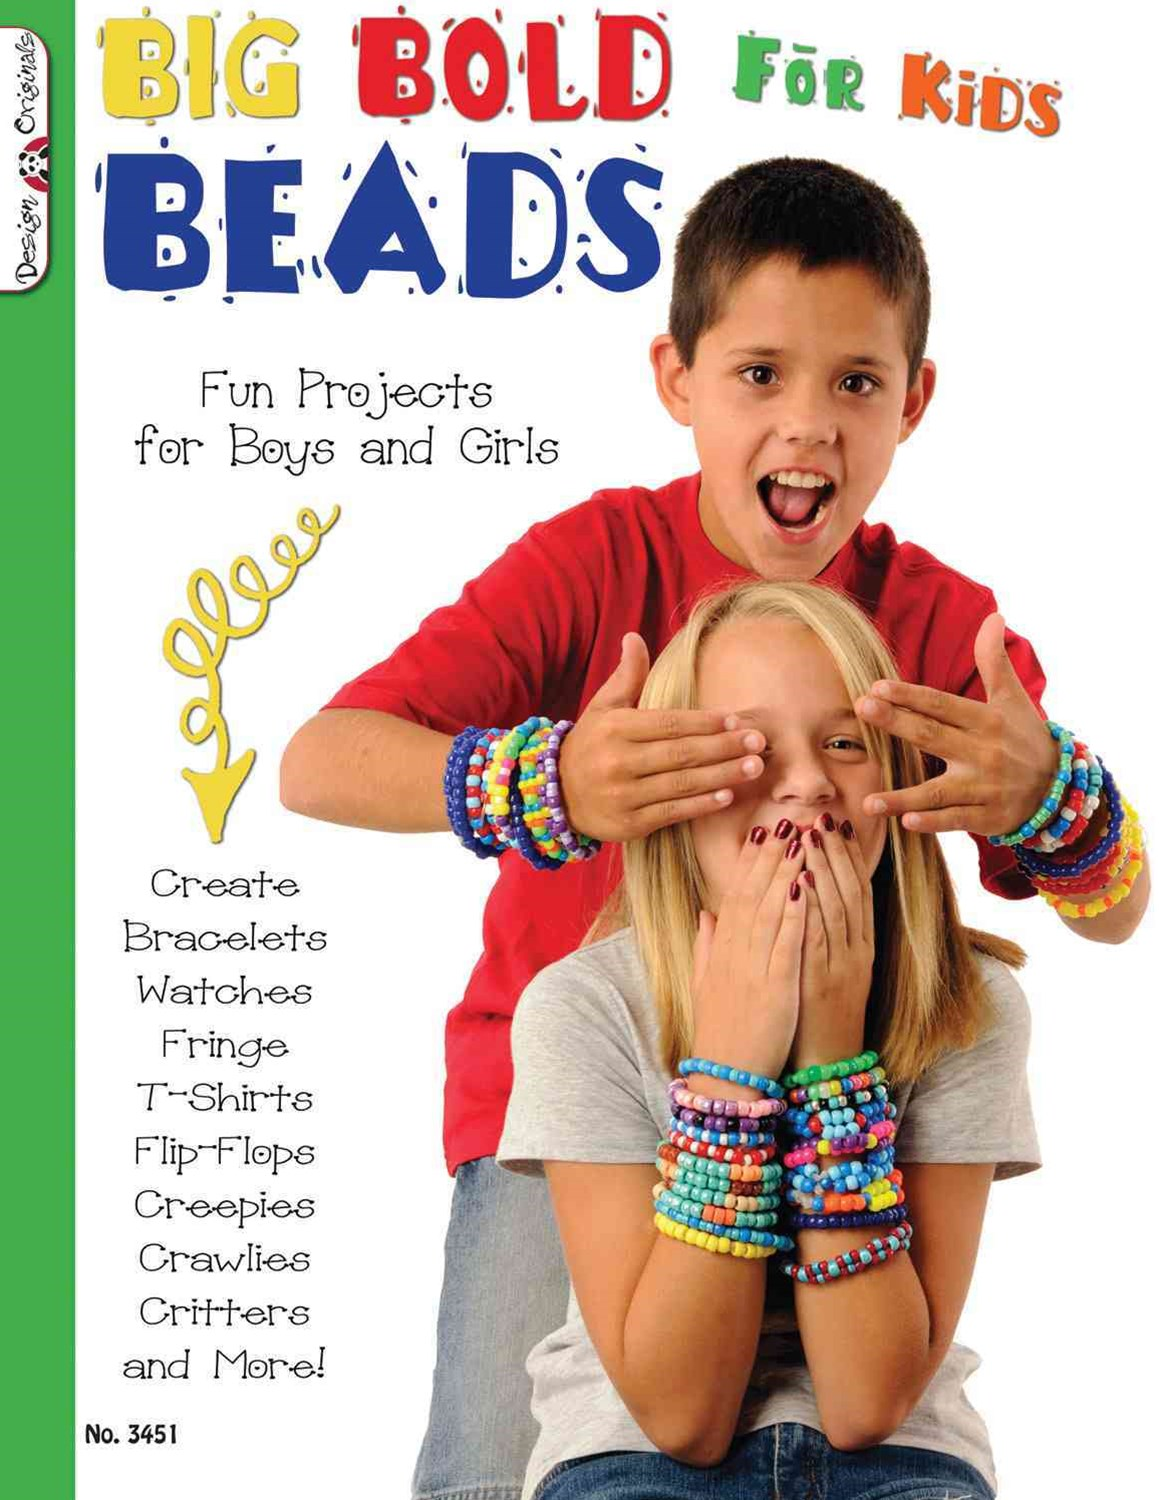 Big Bold Beads for Kids